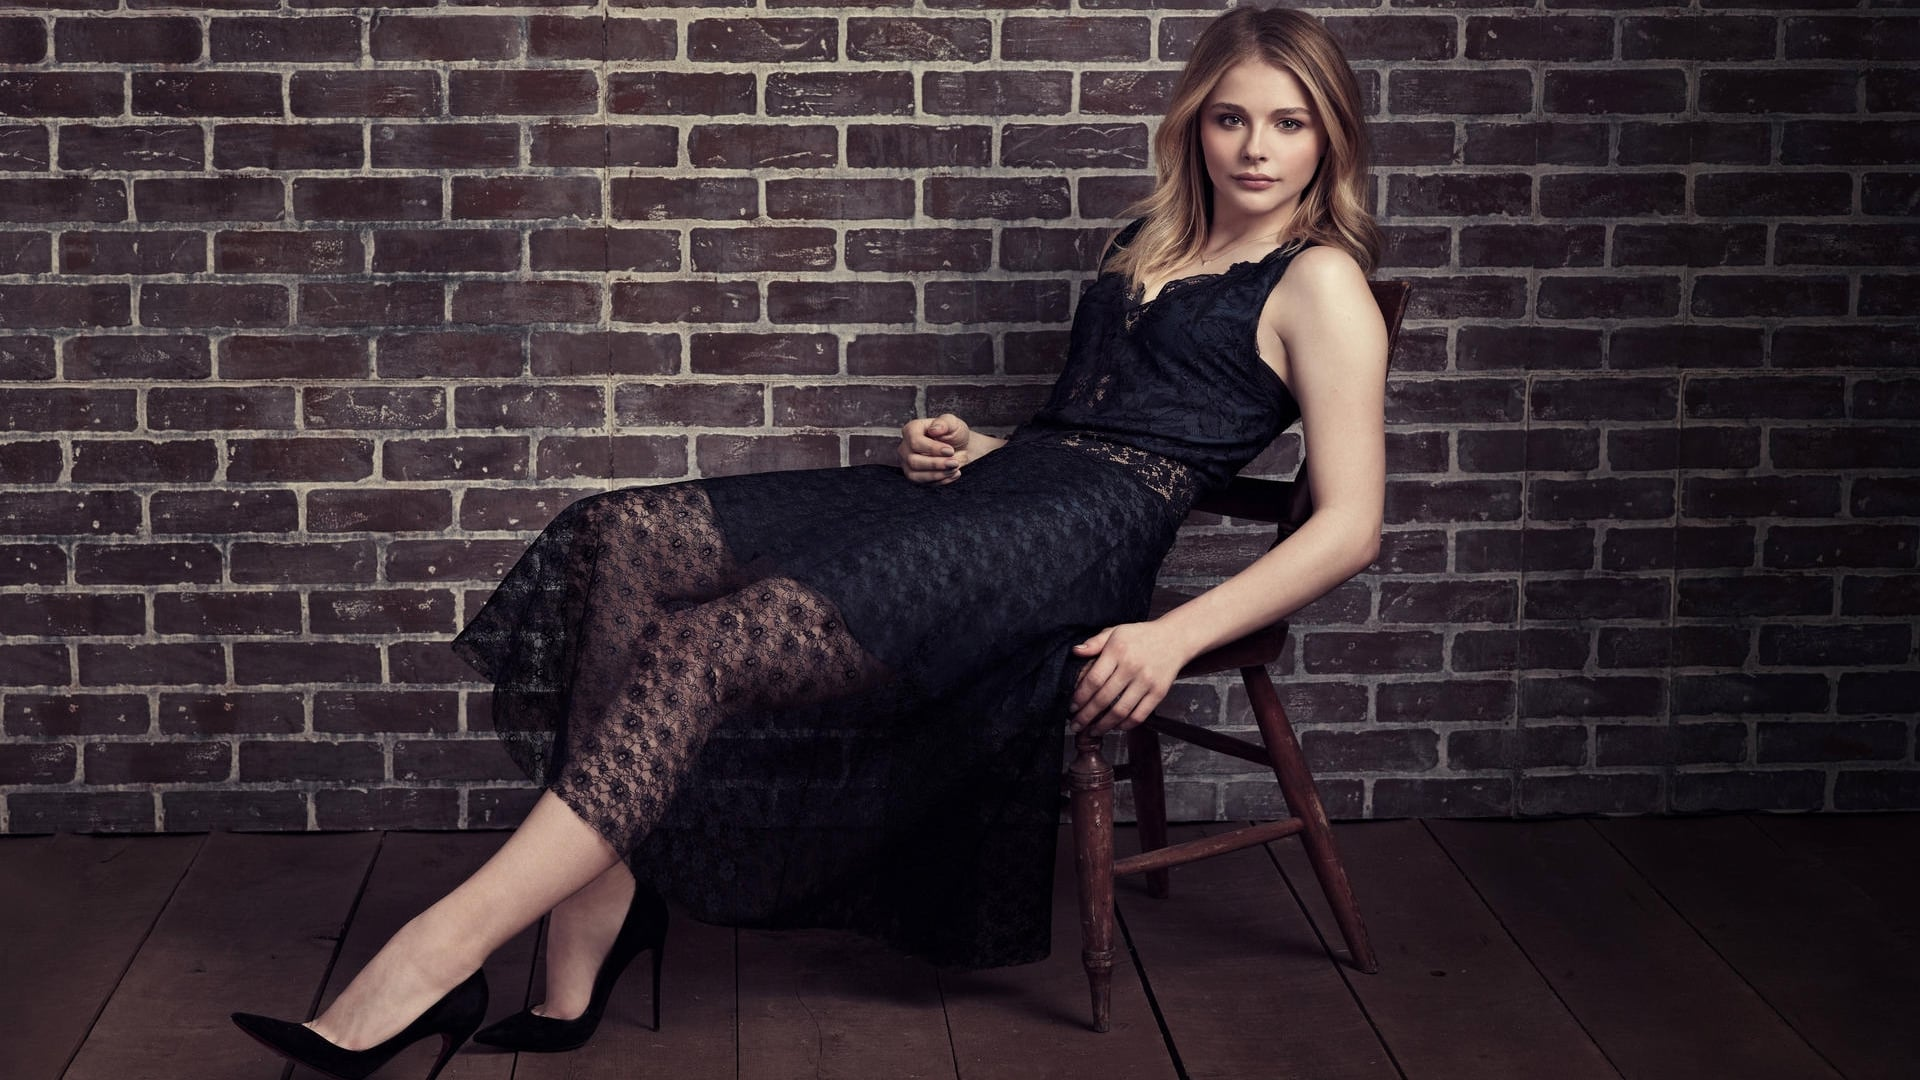 Chloe Grace Moretz on cool hd wallpapers